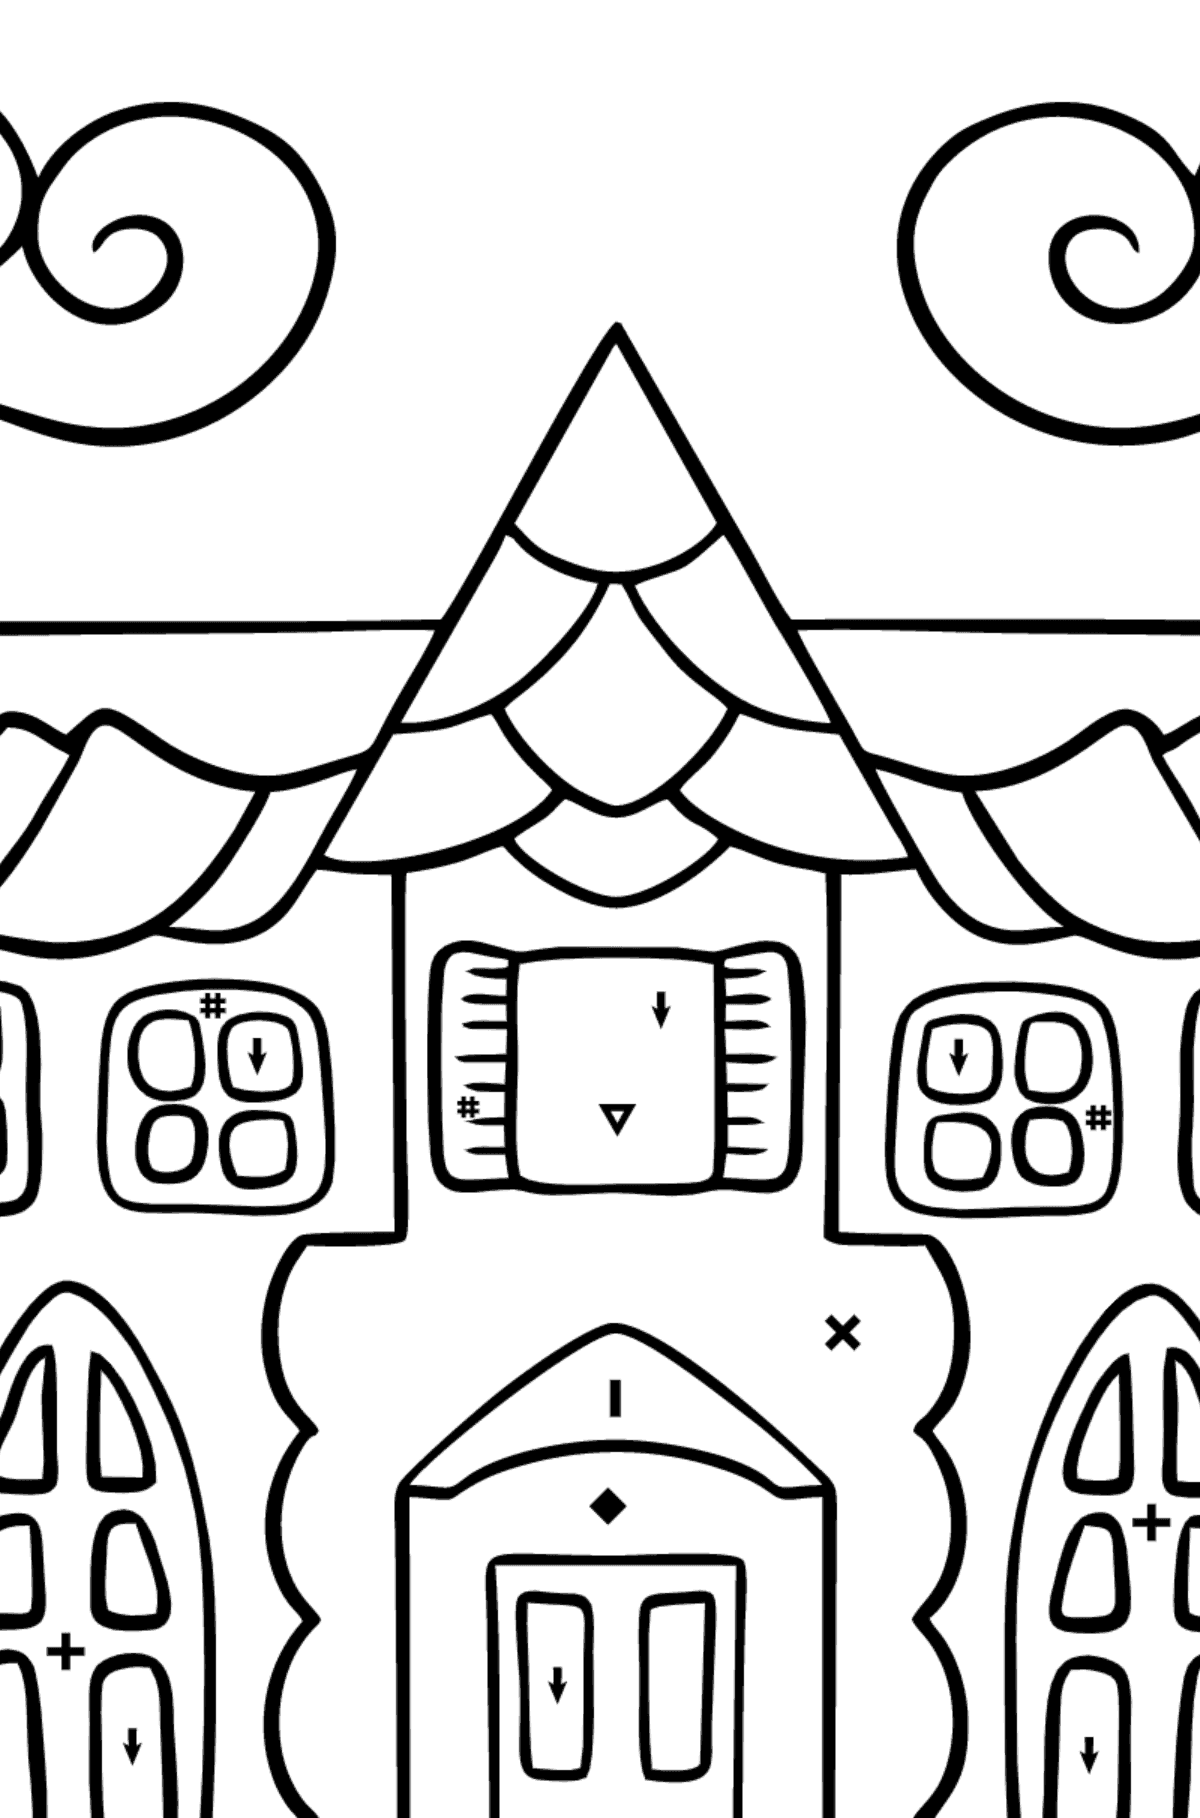 Coloring Page - A House in an Enchanted Kingdom for Children  - Color by Special Symbols